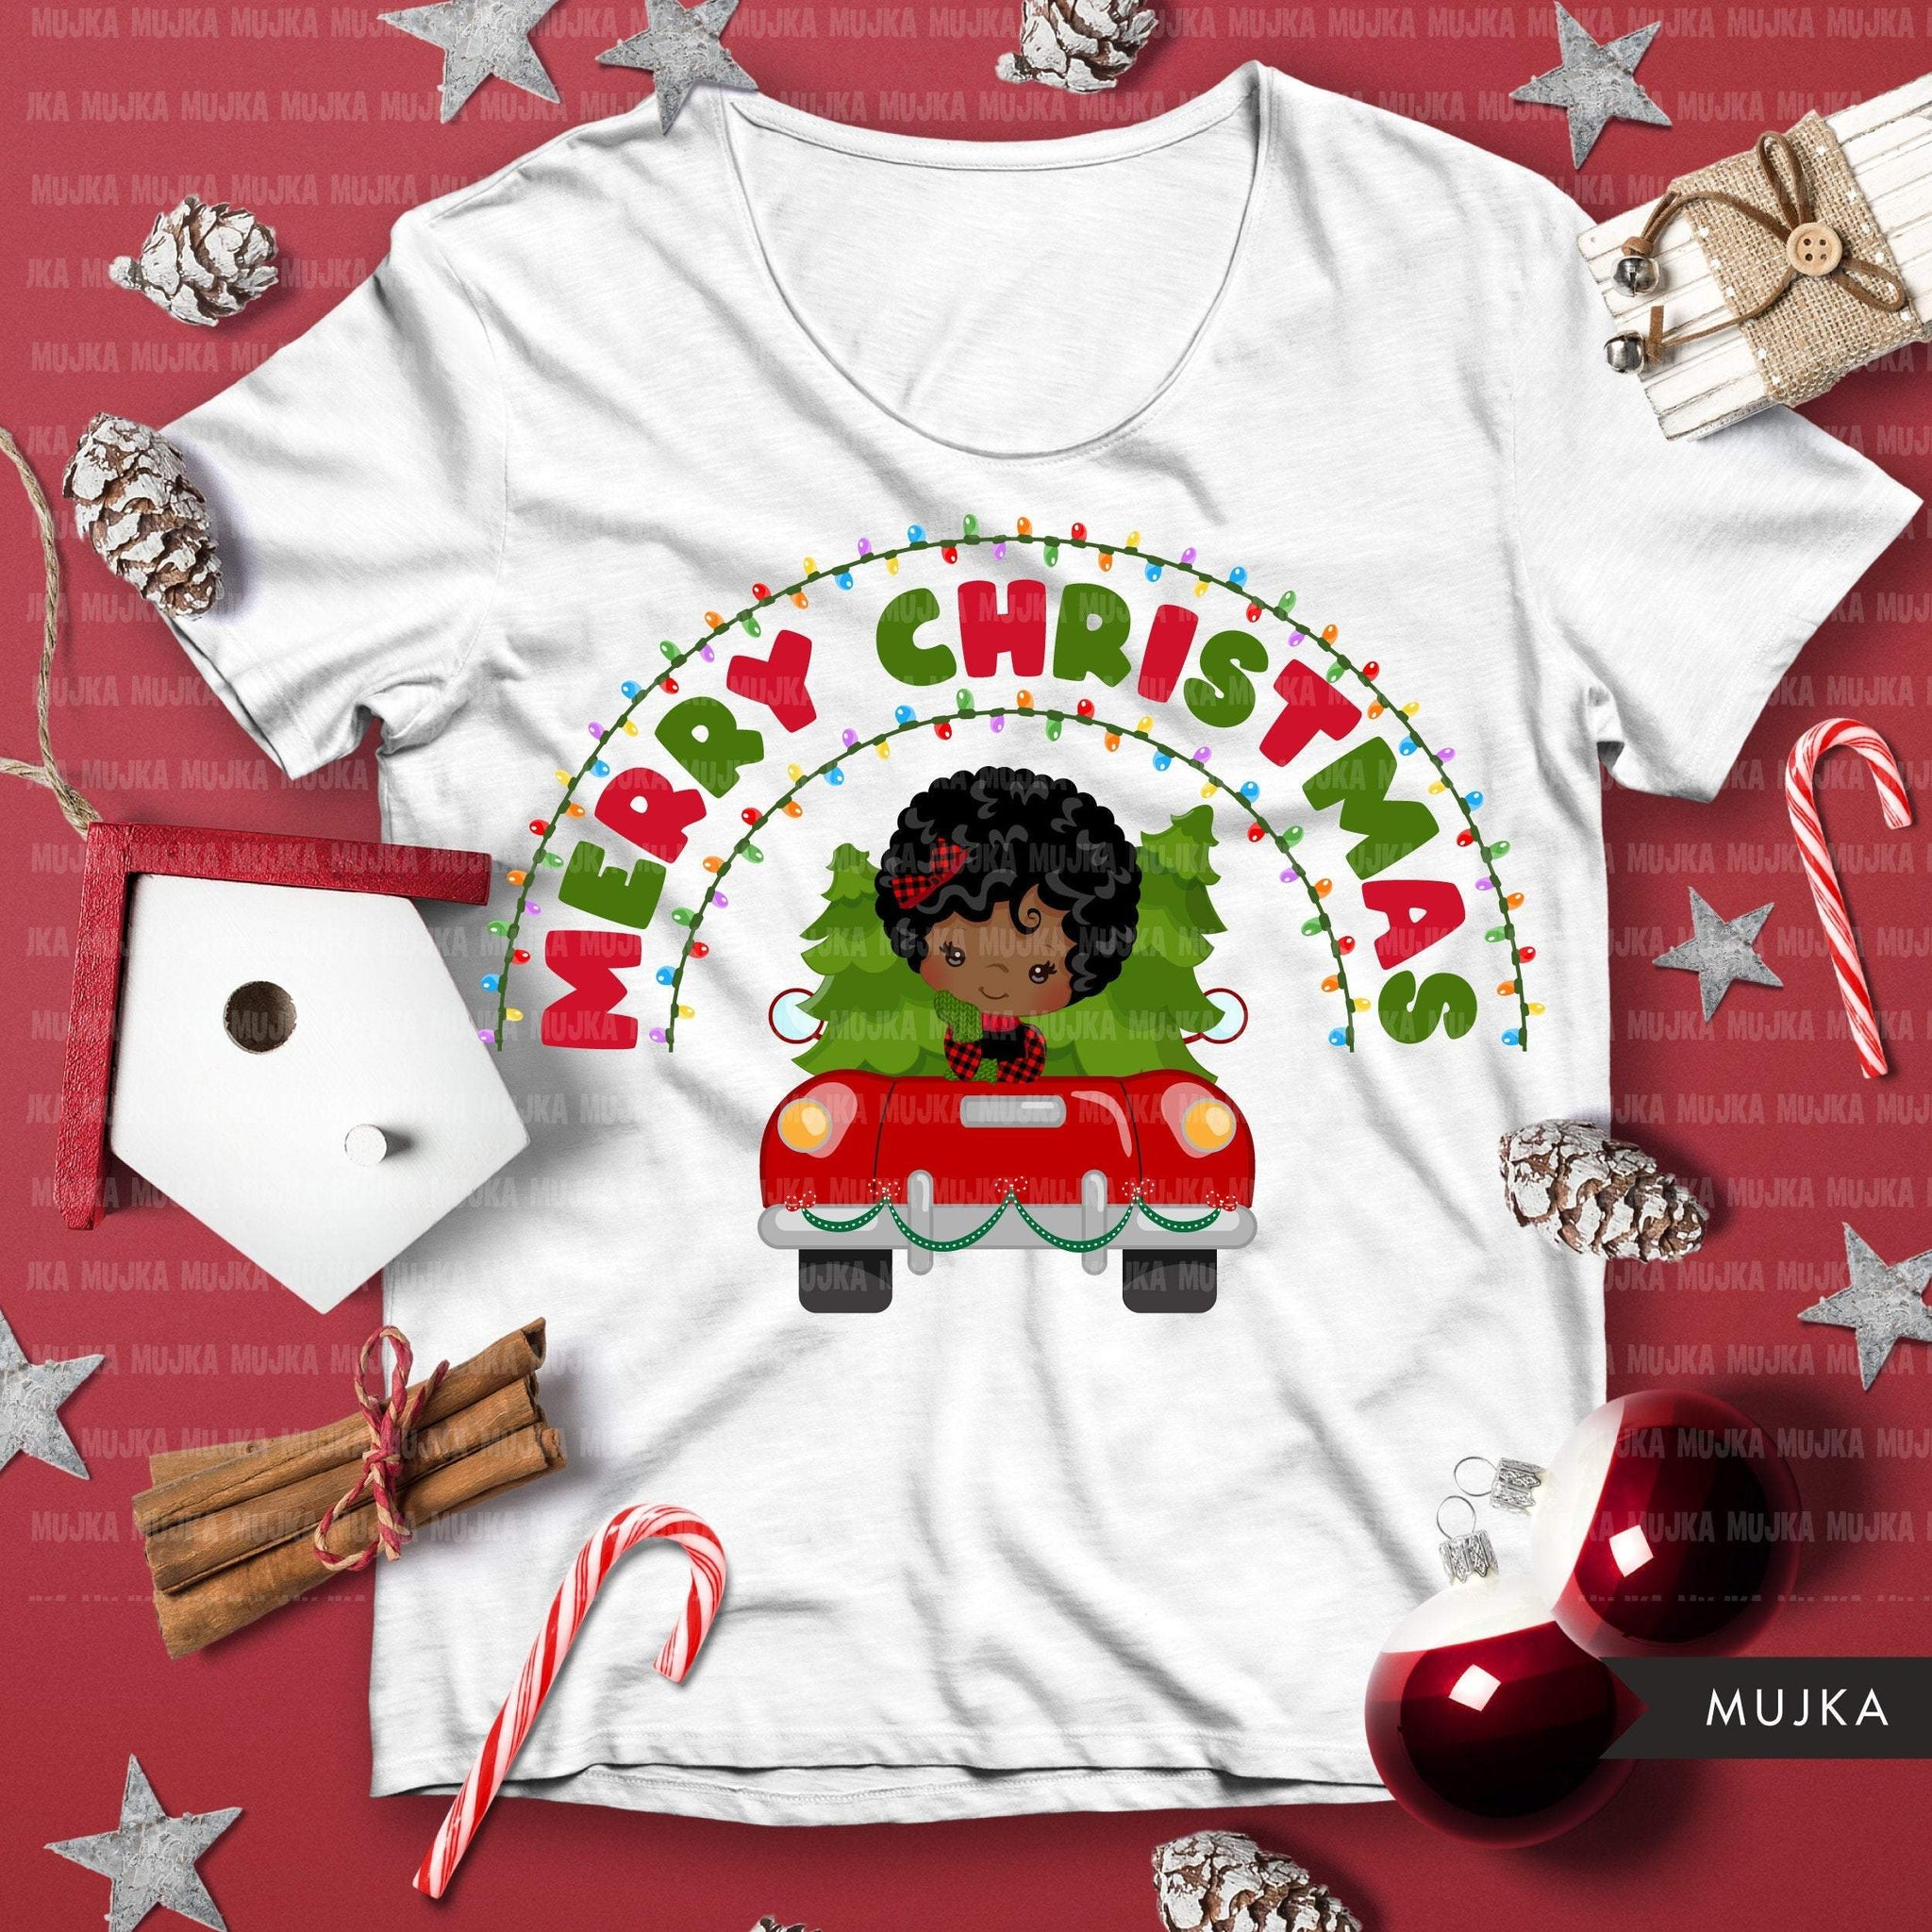 christmas png digital merry christmas red truck htv sublimation image transfer clipart t-shirt black girl